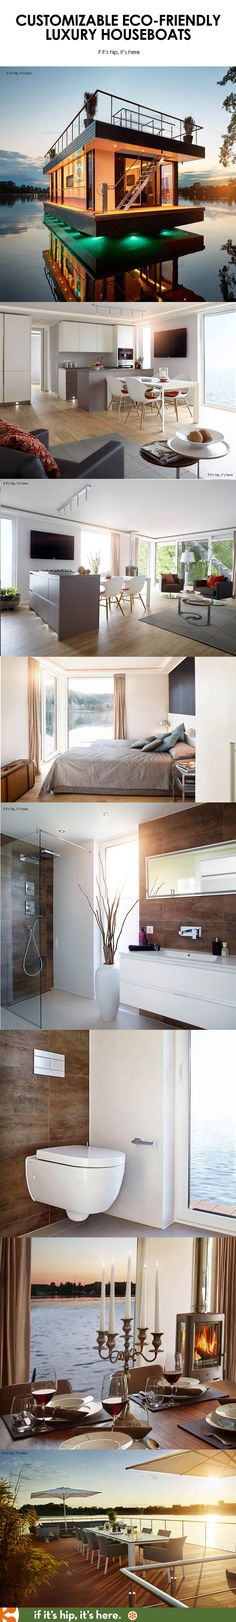 Eco-Friendly High-End Living That Floats: Rev House Houseboats. - See more at: http://www.ifitshipitshere.com/eco-friendly-rev-house-houseboats/#sthash.JFqBnUtS.dpuf